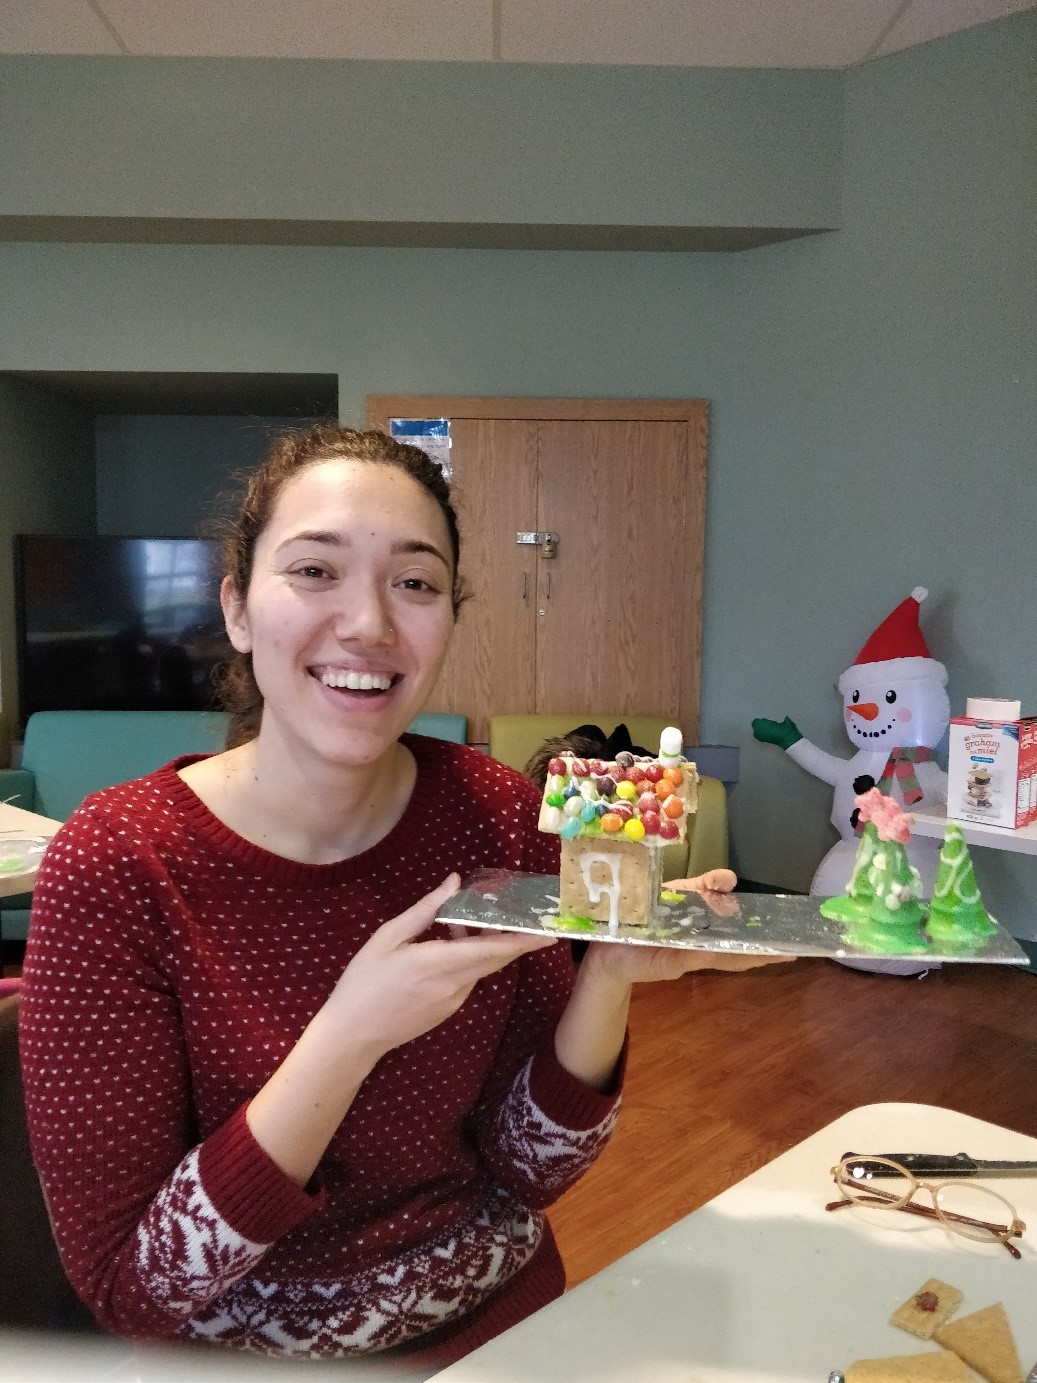 Ekin Eray holds a gingerbread house made during a community event.